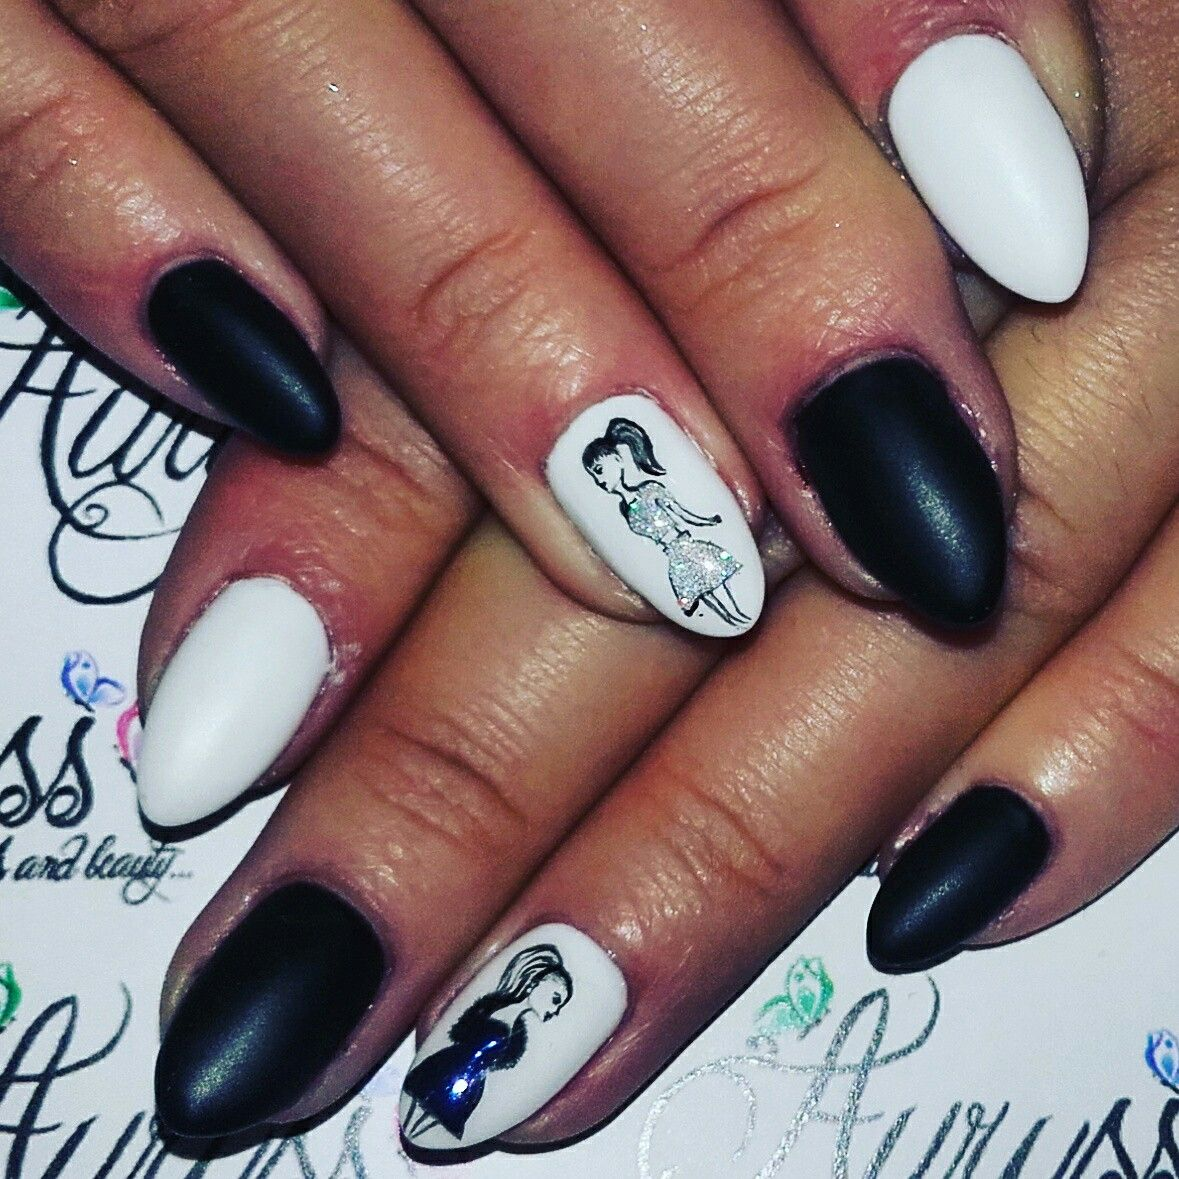 Nails art painting girl | nails art-painting | Pinterest | Girls